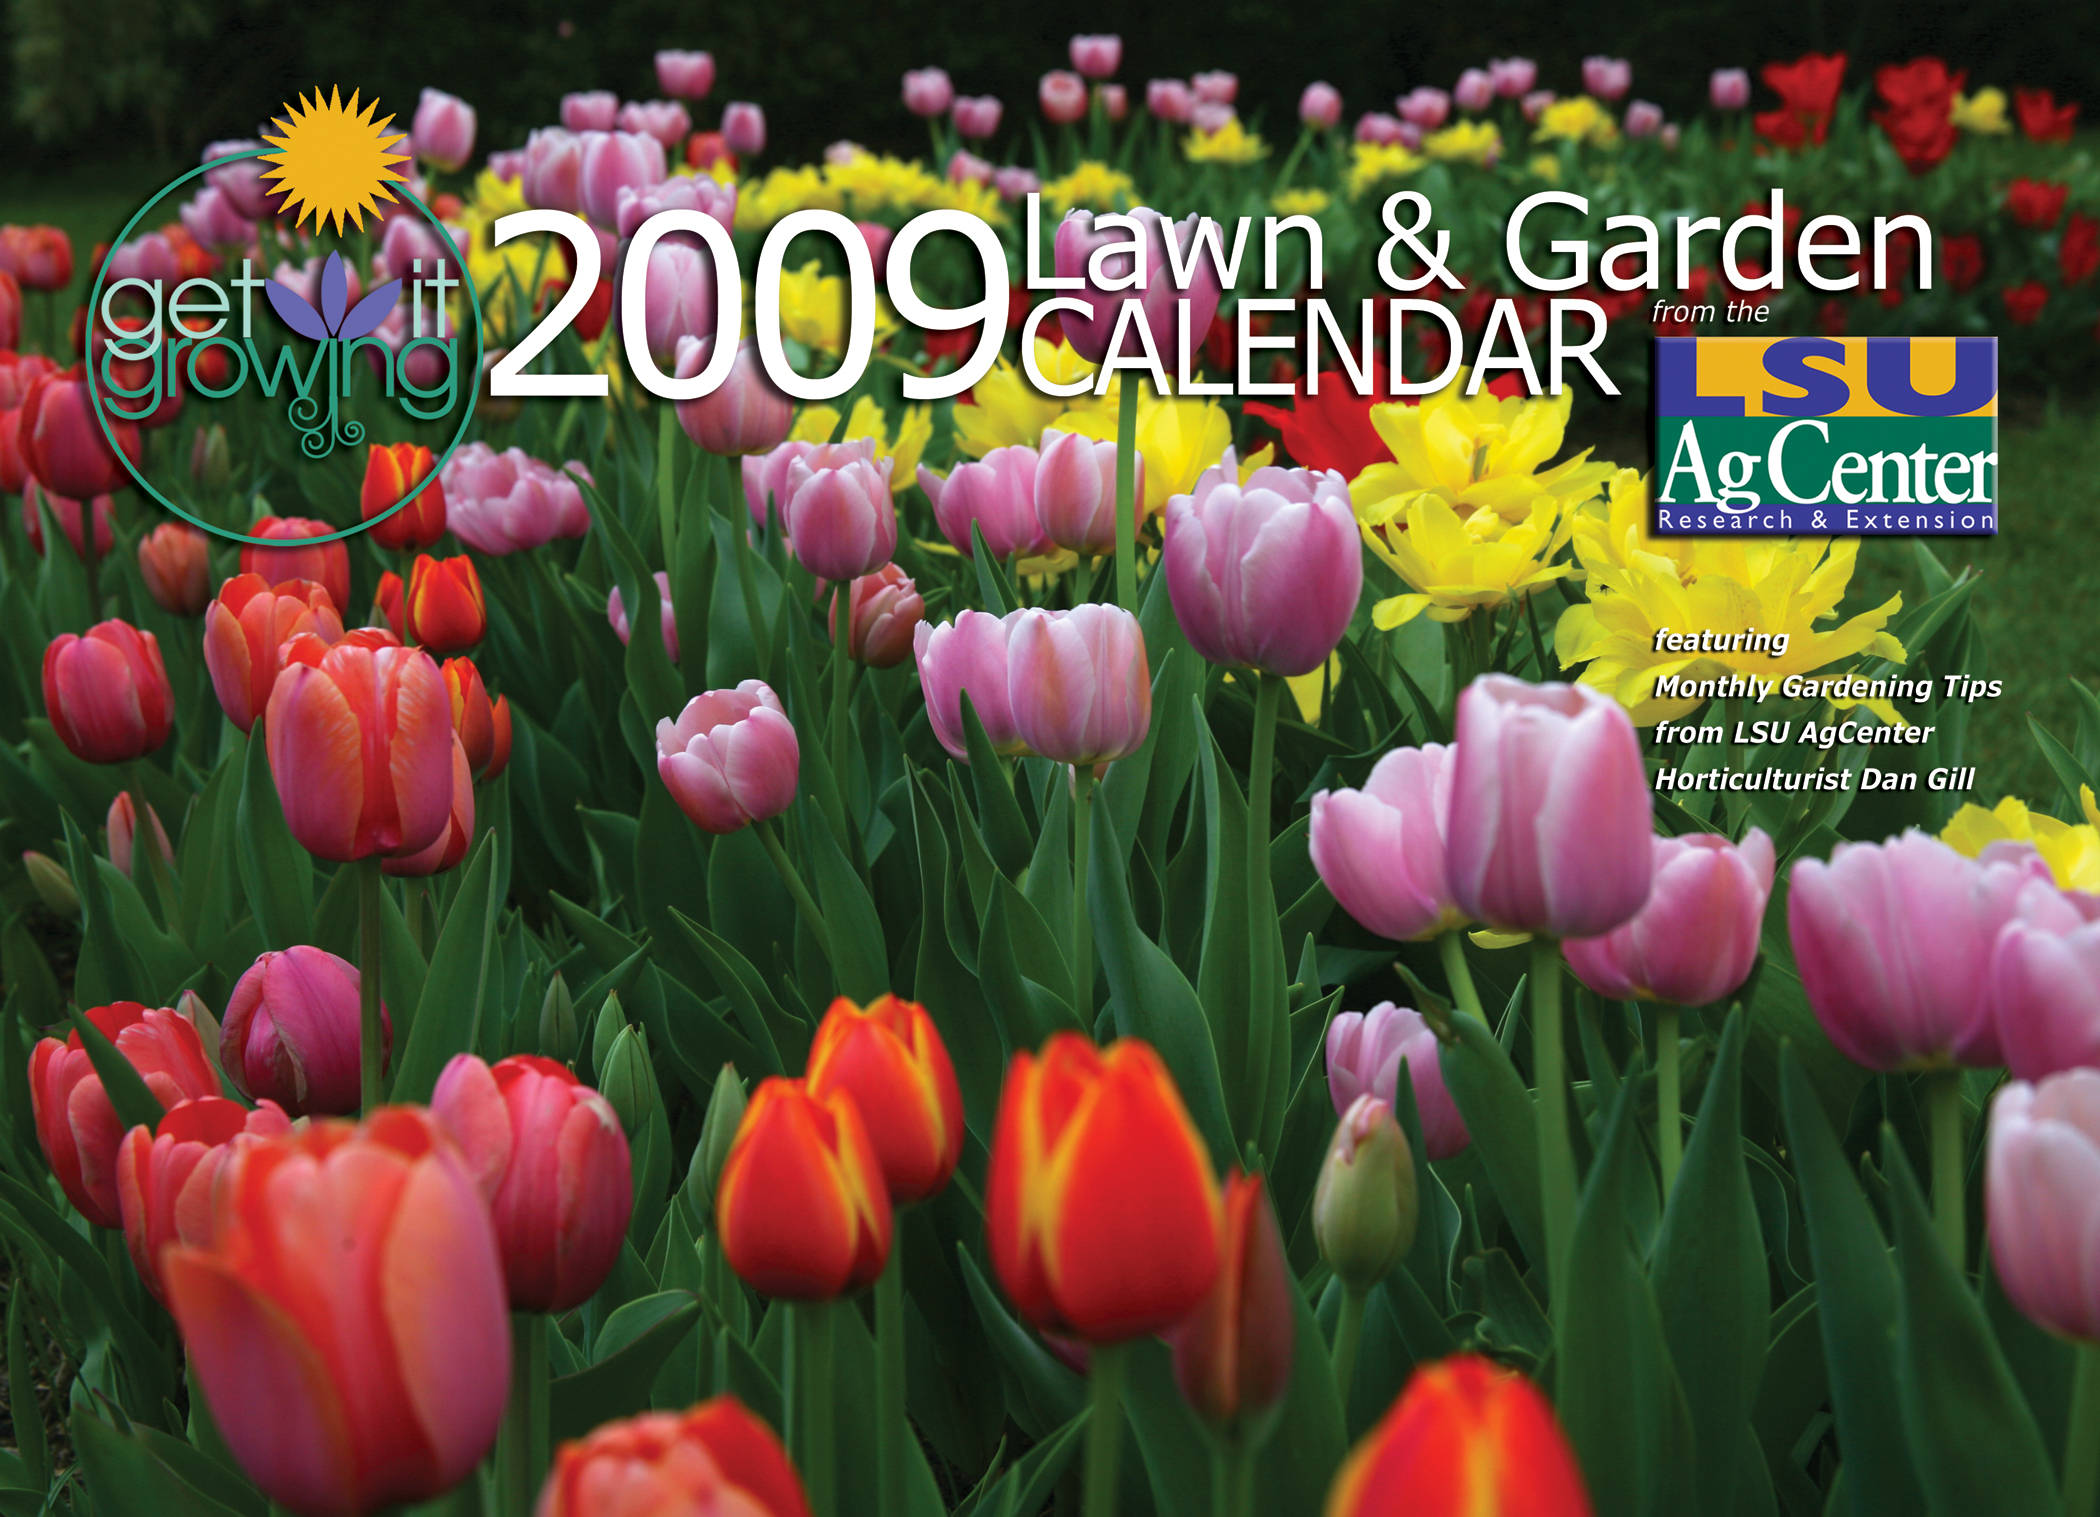 Louisianians encouraged to 'Get It Growing'; LSU AgCenter publishes 2009 calendar